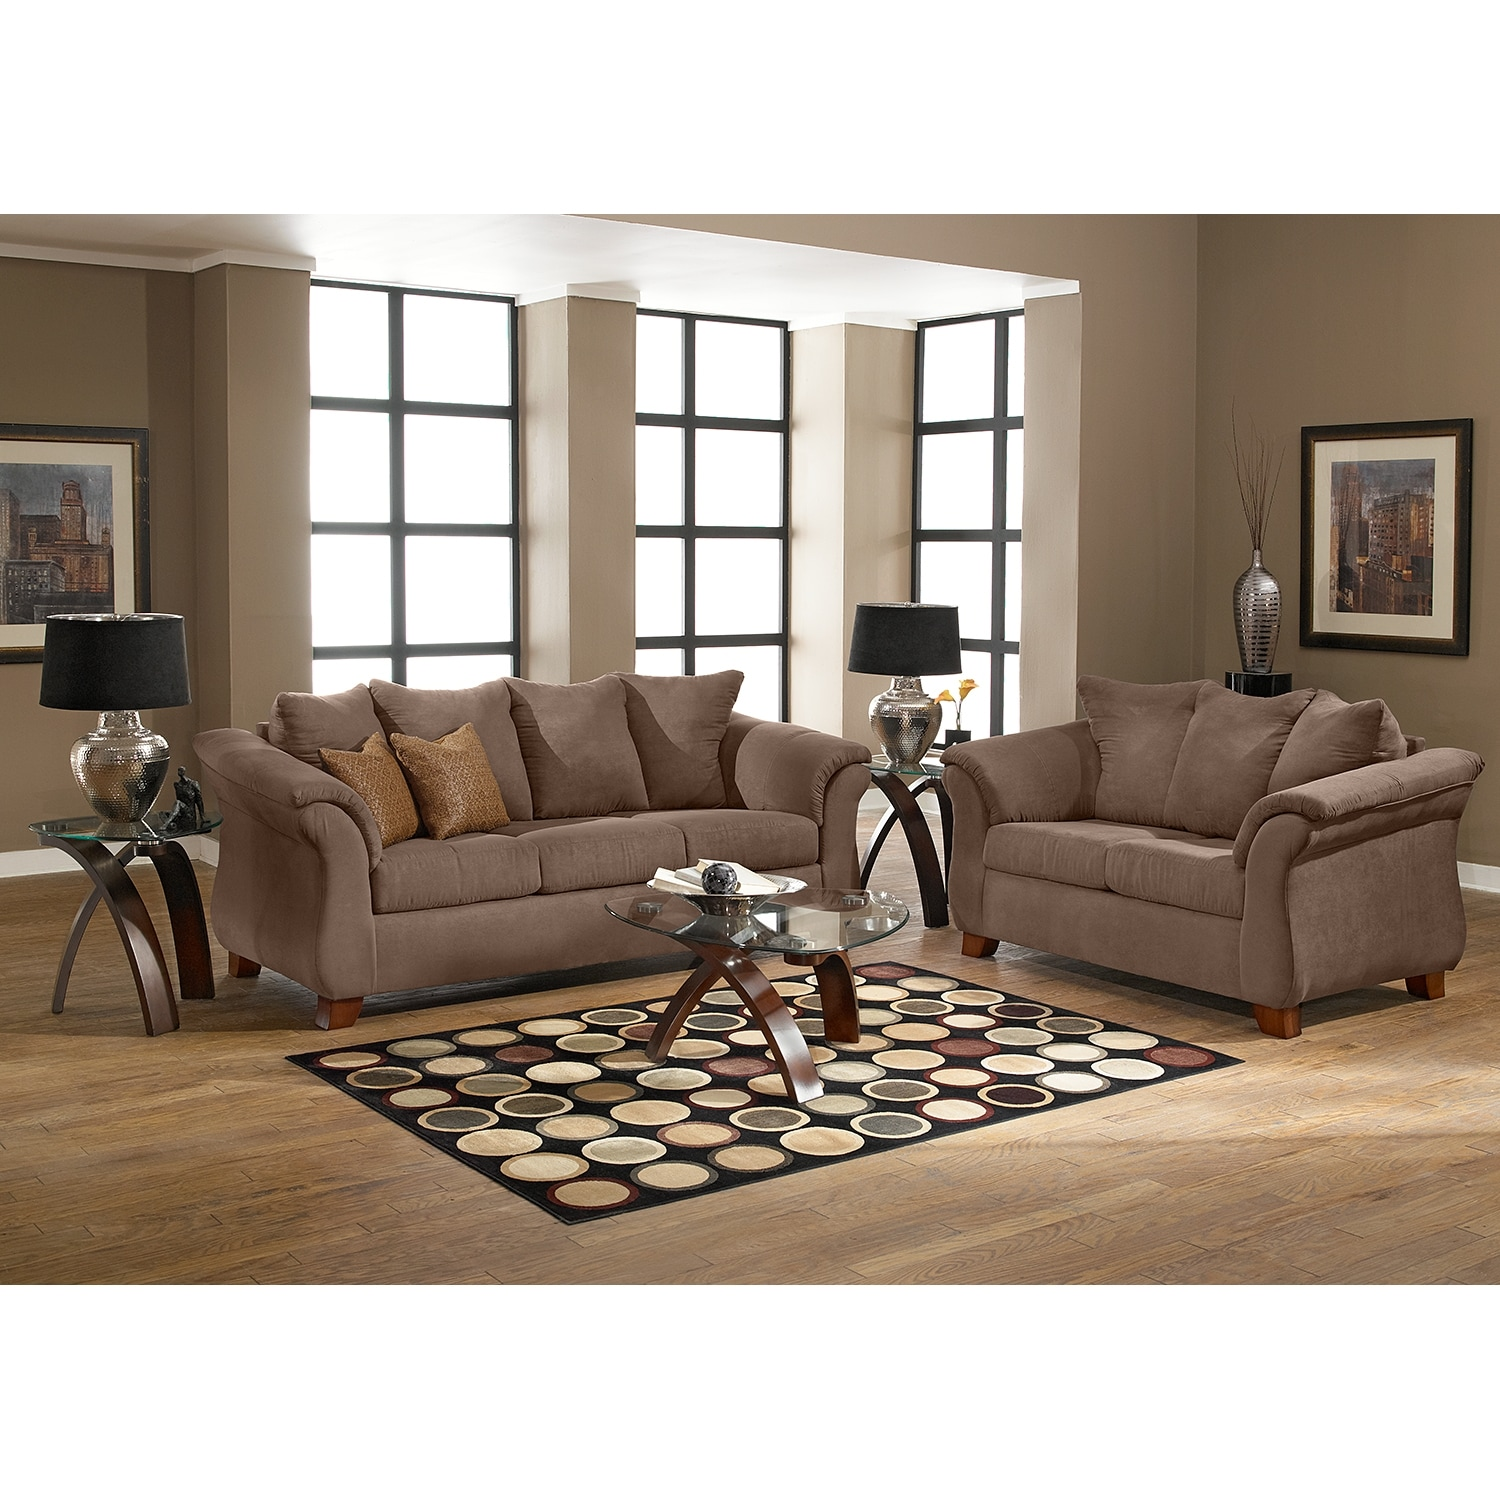 Sofa Design For Your Living Room With Accenting Cream Sofa Chairs